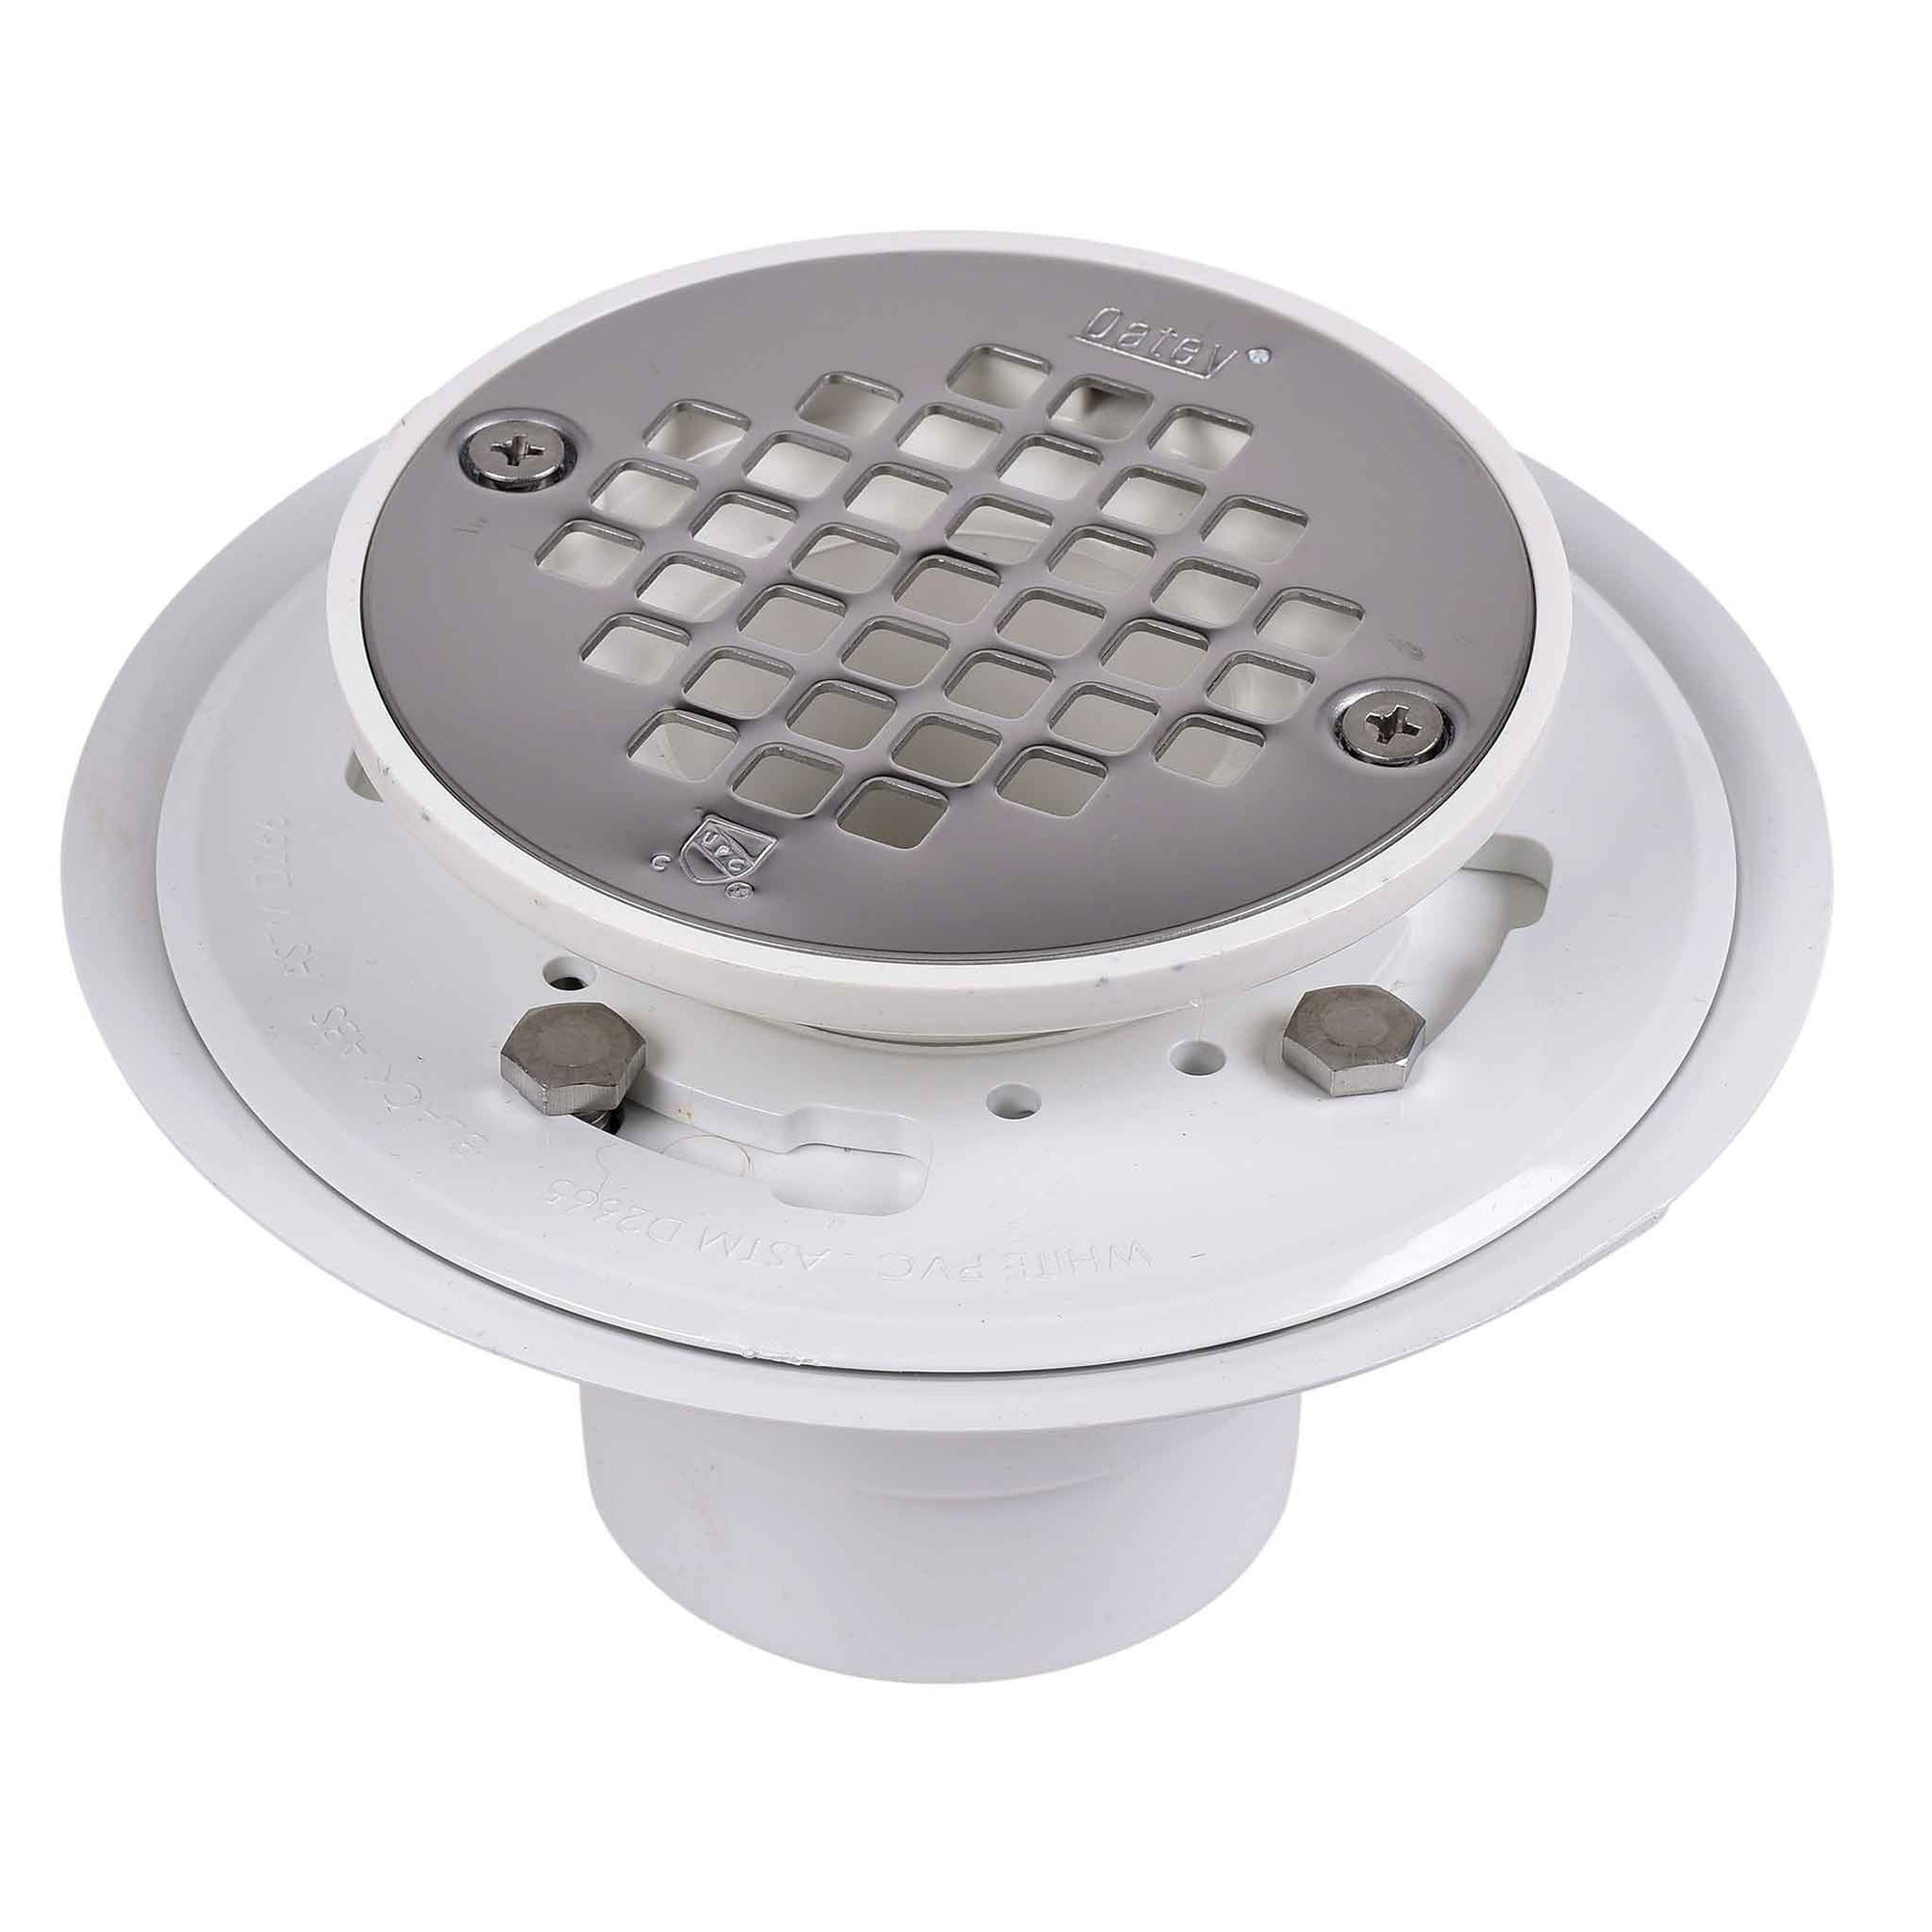 OATEY® 130 SERIES SHOWER DRAIN FOR TILE SHOWER BASES